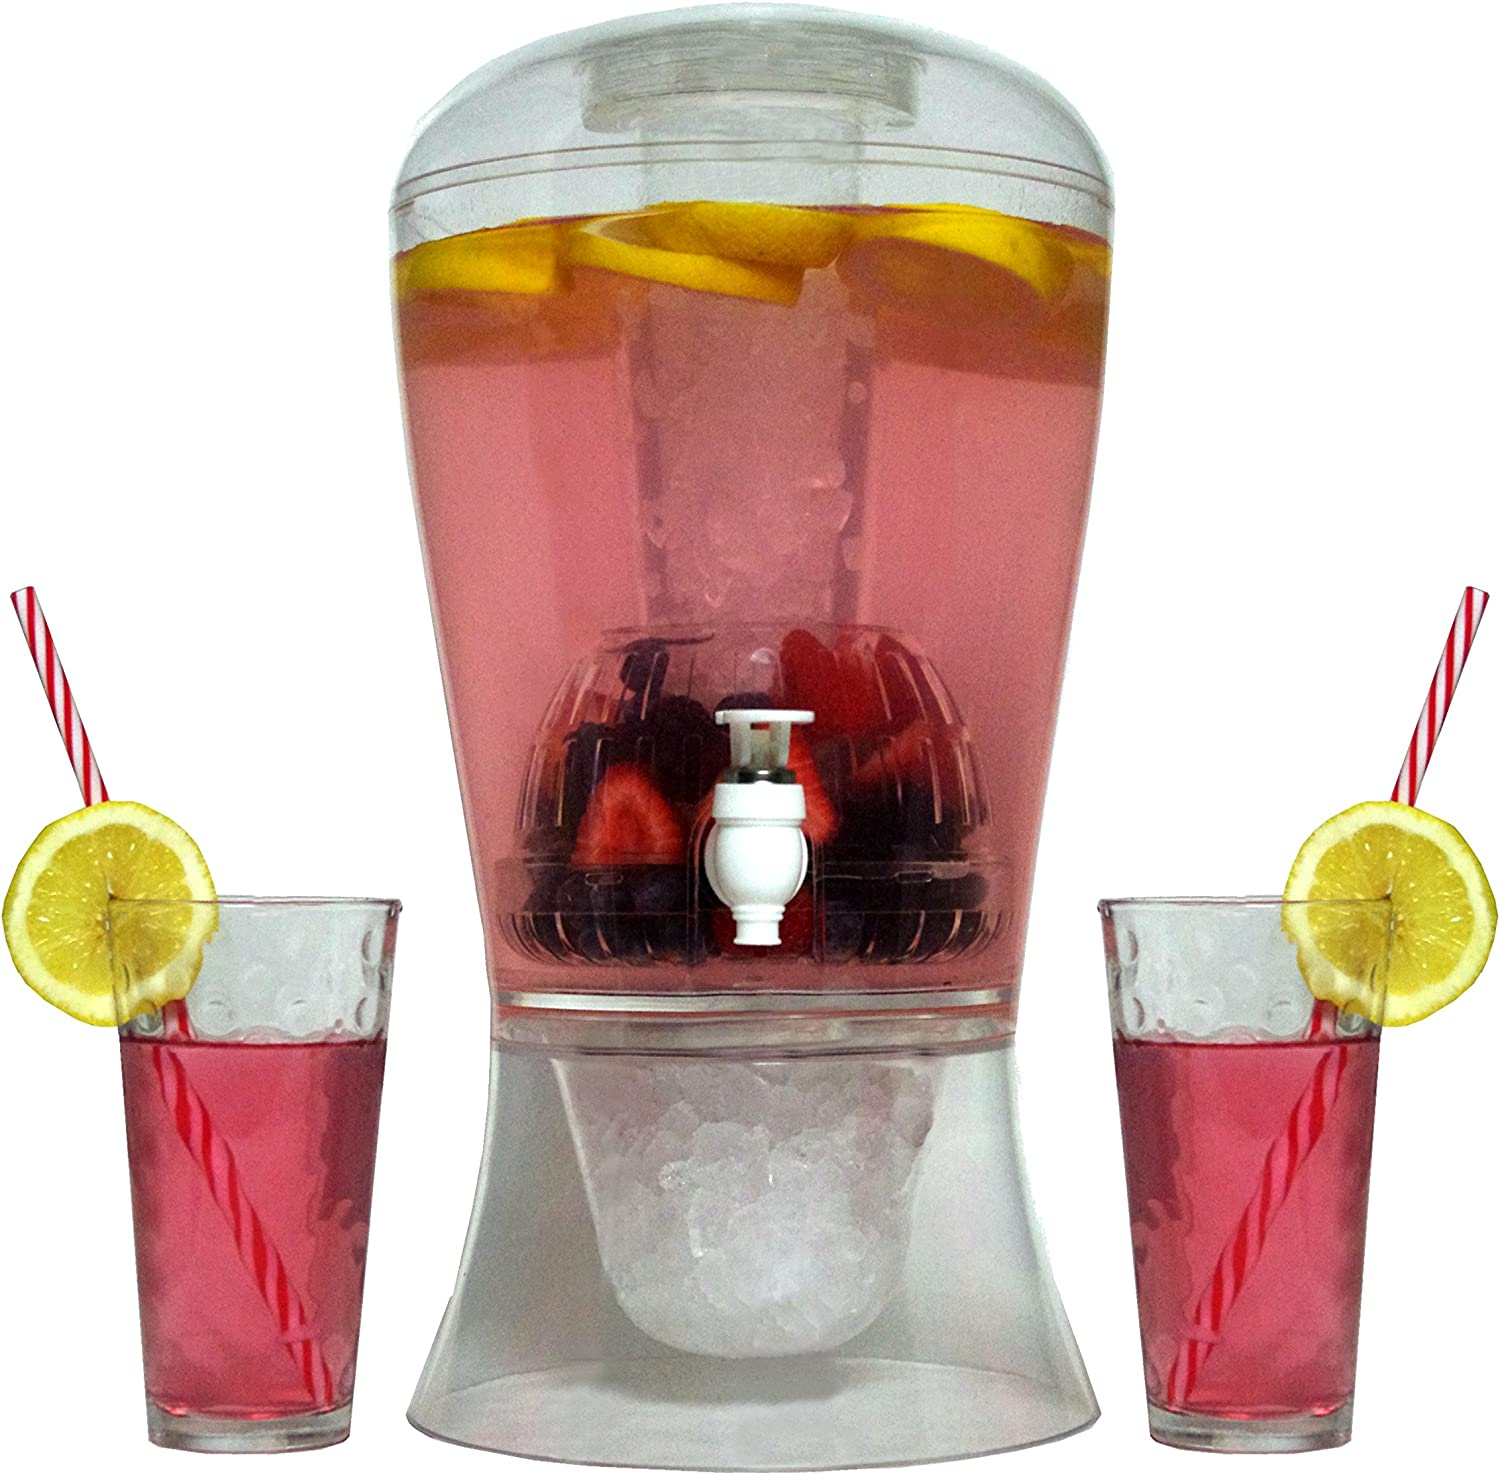 Oaklyn Large 2 Gallon Beverage Dispenser On Stand With Spout - Ice Base And Core Keep Juice And Drinks Cold - Shatterproof Acrylic Jug With Fruit And Tea Infuser And Spigot Perfect For Parties